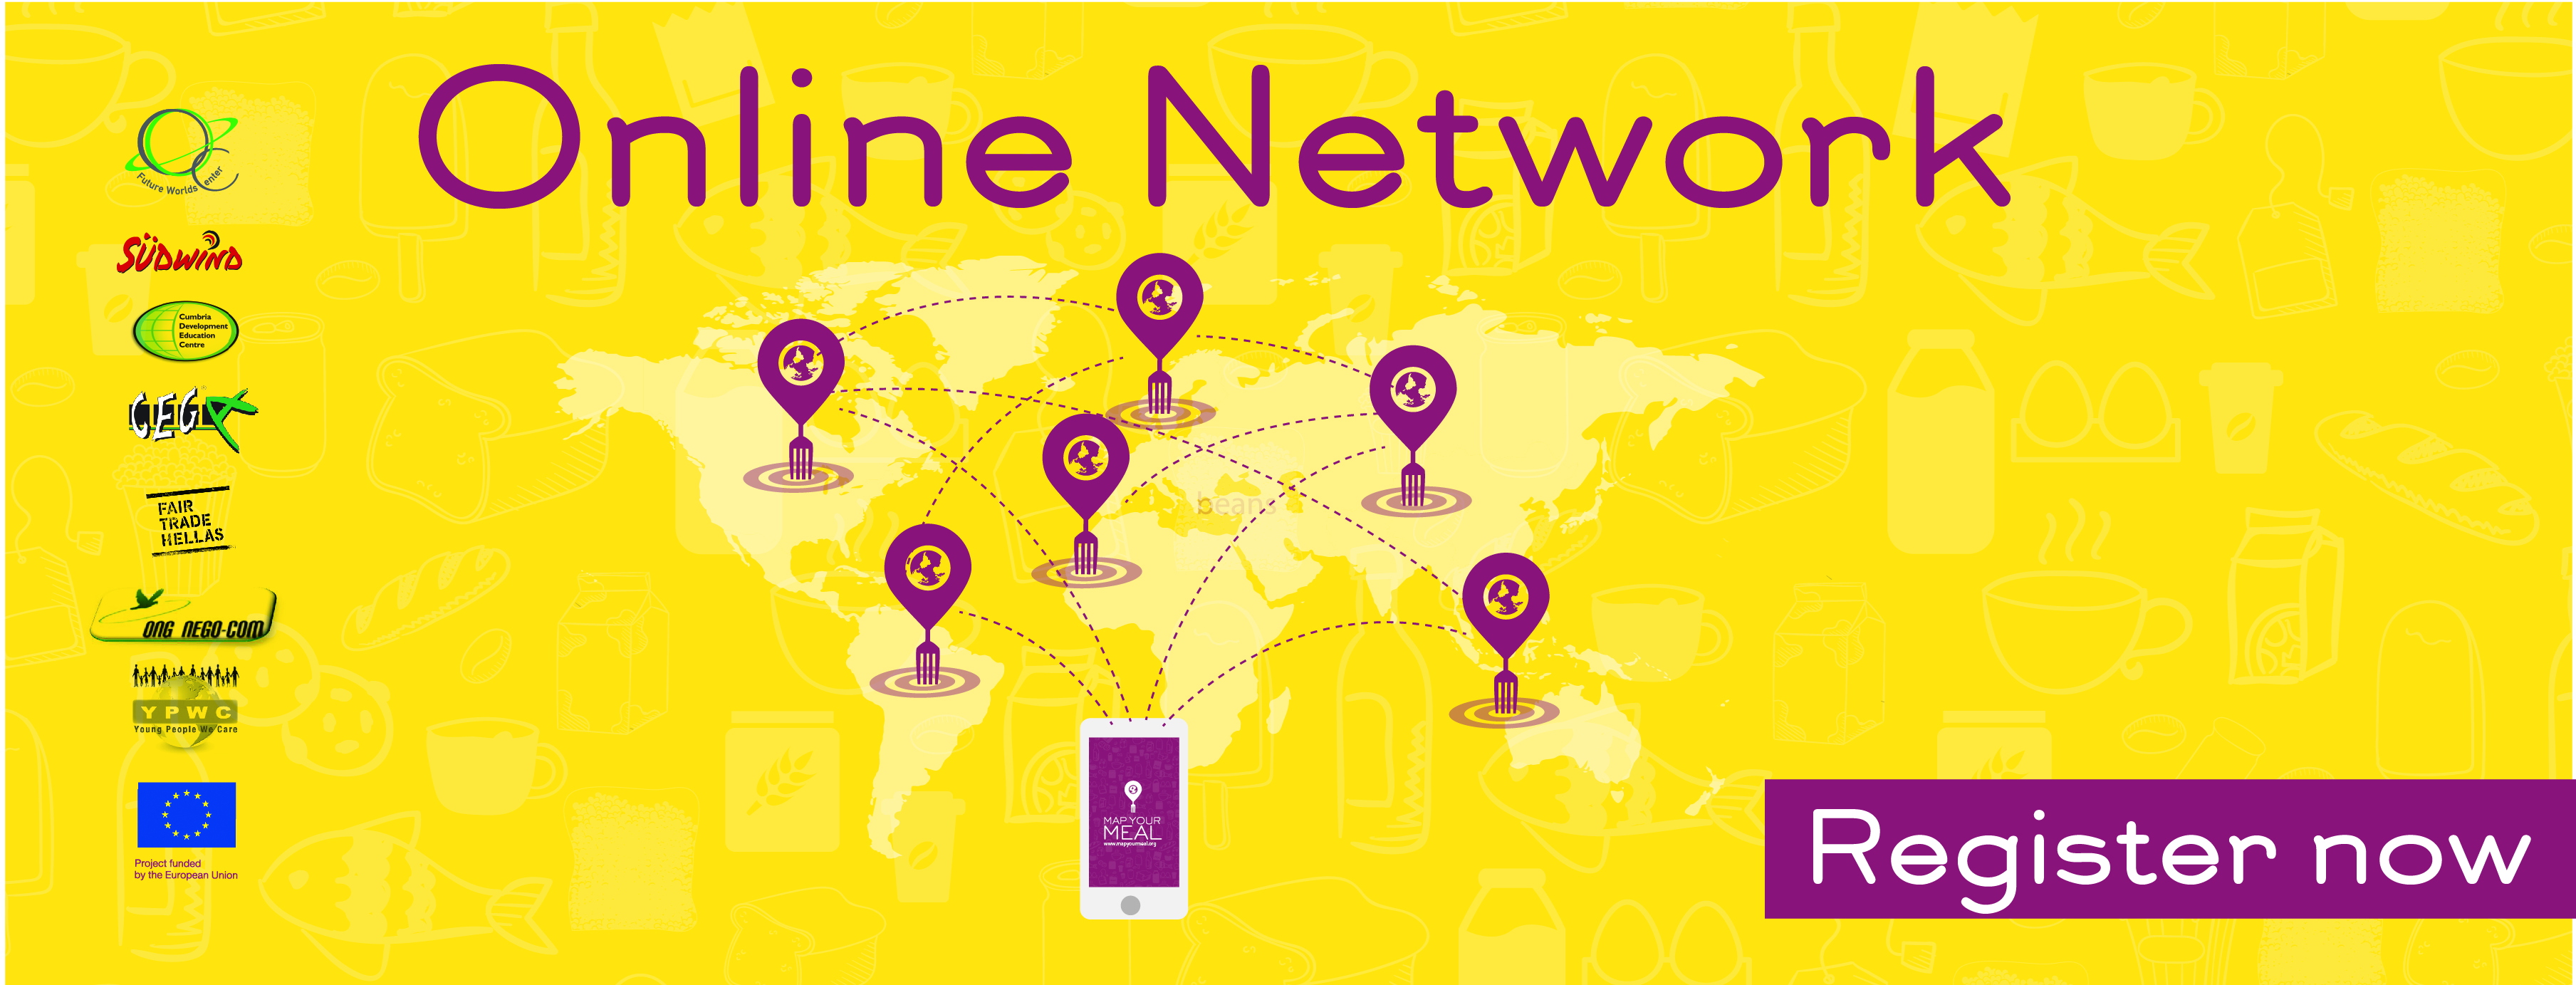 ONLINENETWORK cover 02